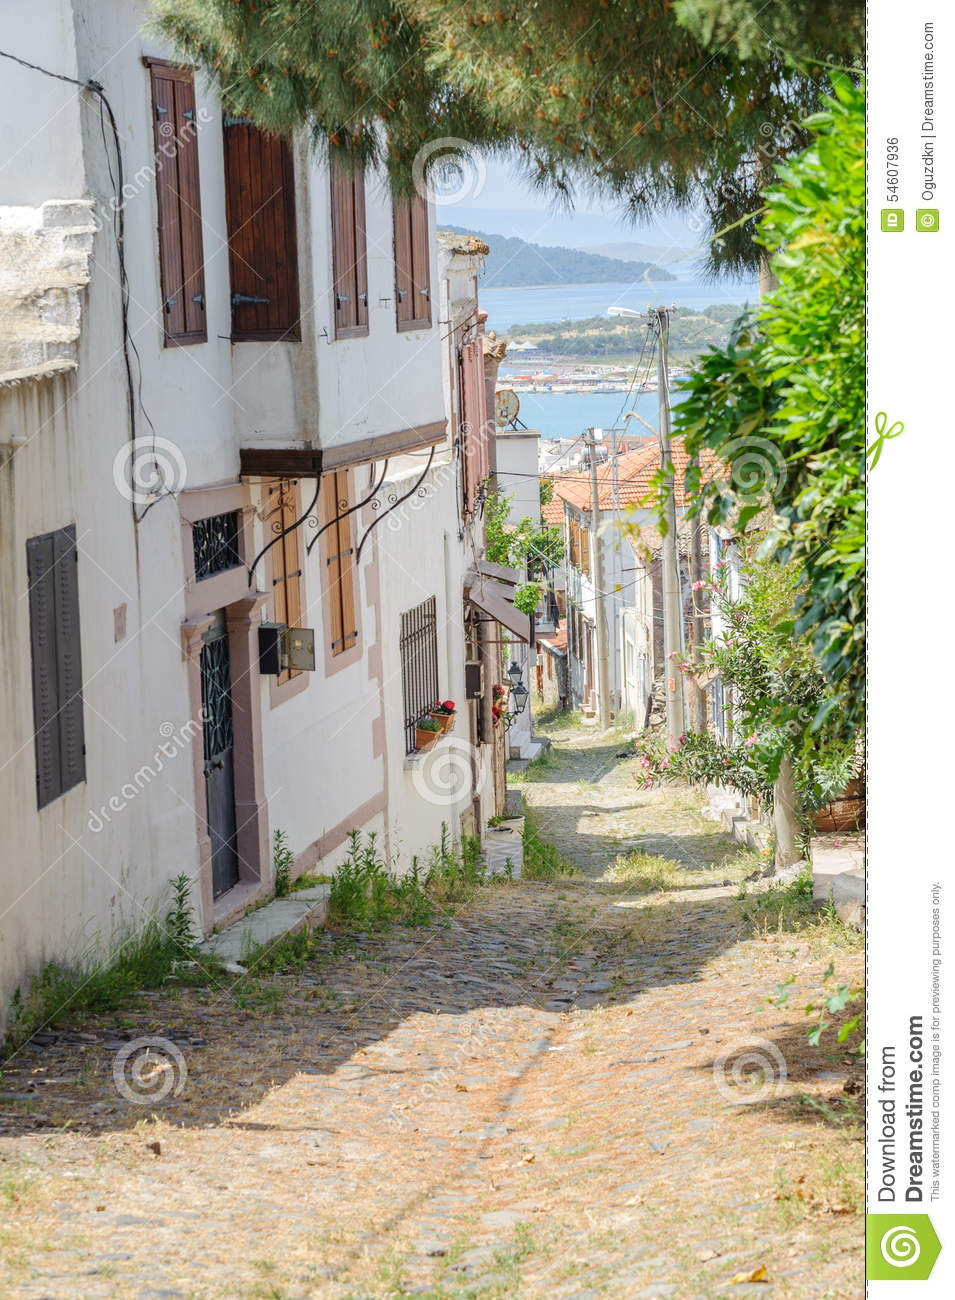 Balikesir Turkey  city images : BALIKESIR, TURKEY MAY 18 2015: A narrow street of old touristic town ...